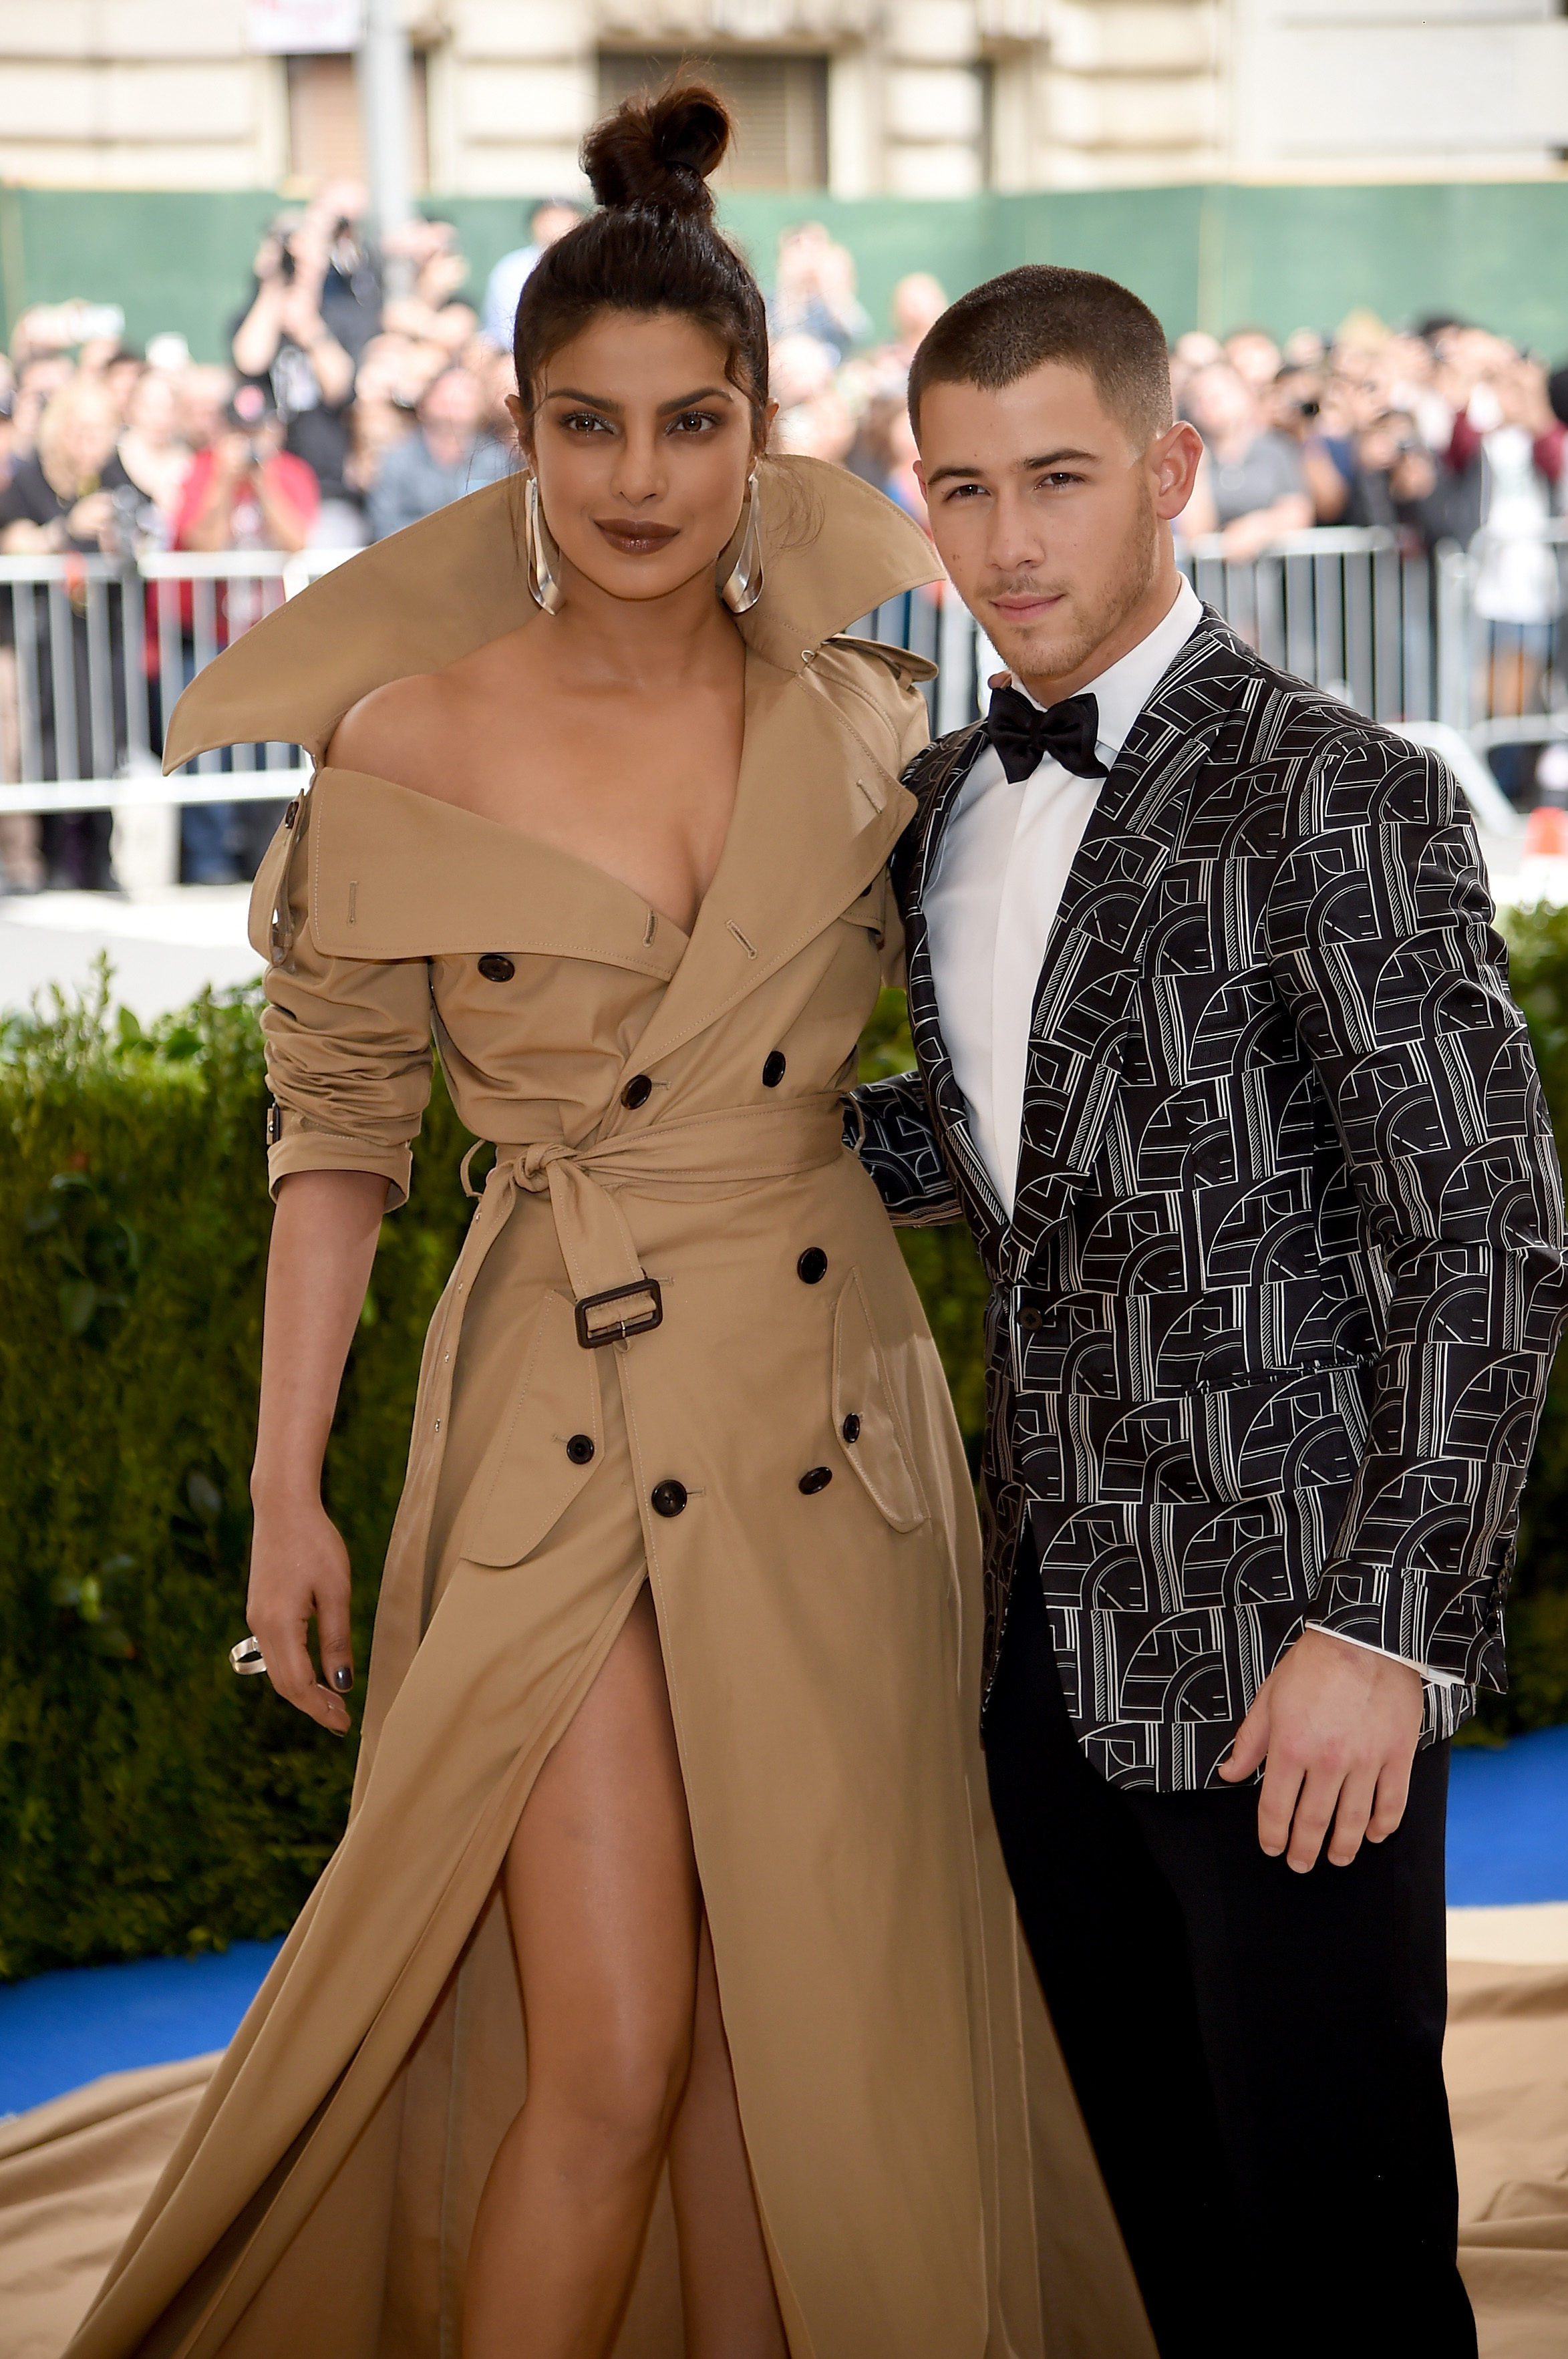 Priyanka Chopra (L) and Nick Jonas attend the 'Rei Kawakubo/Comme des Garcons: Art Of The In-Between' Costume Institute Gala at Metropolitan Museum of Art on May 1, 2017 in New York City.